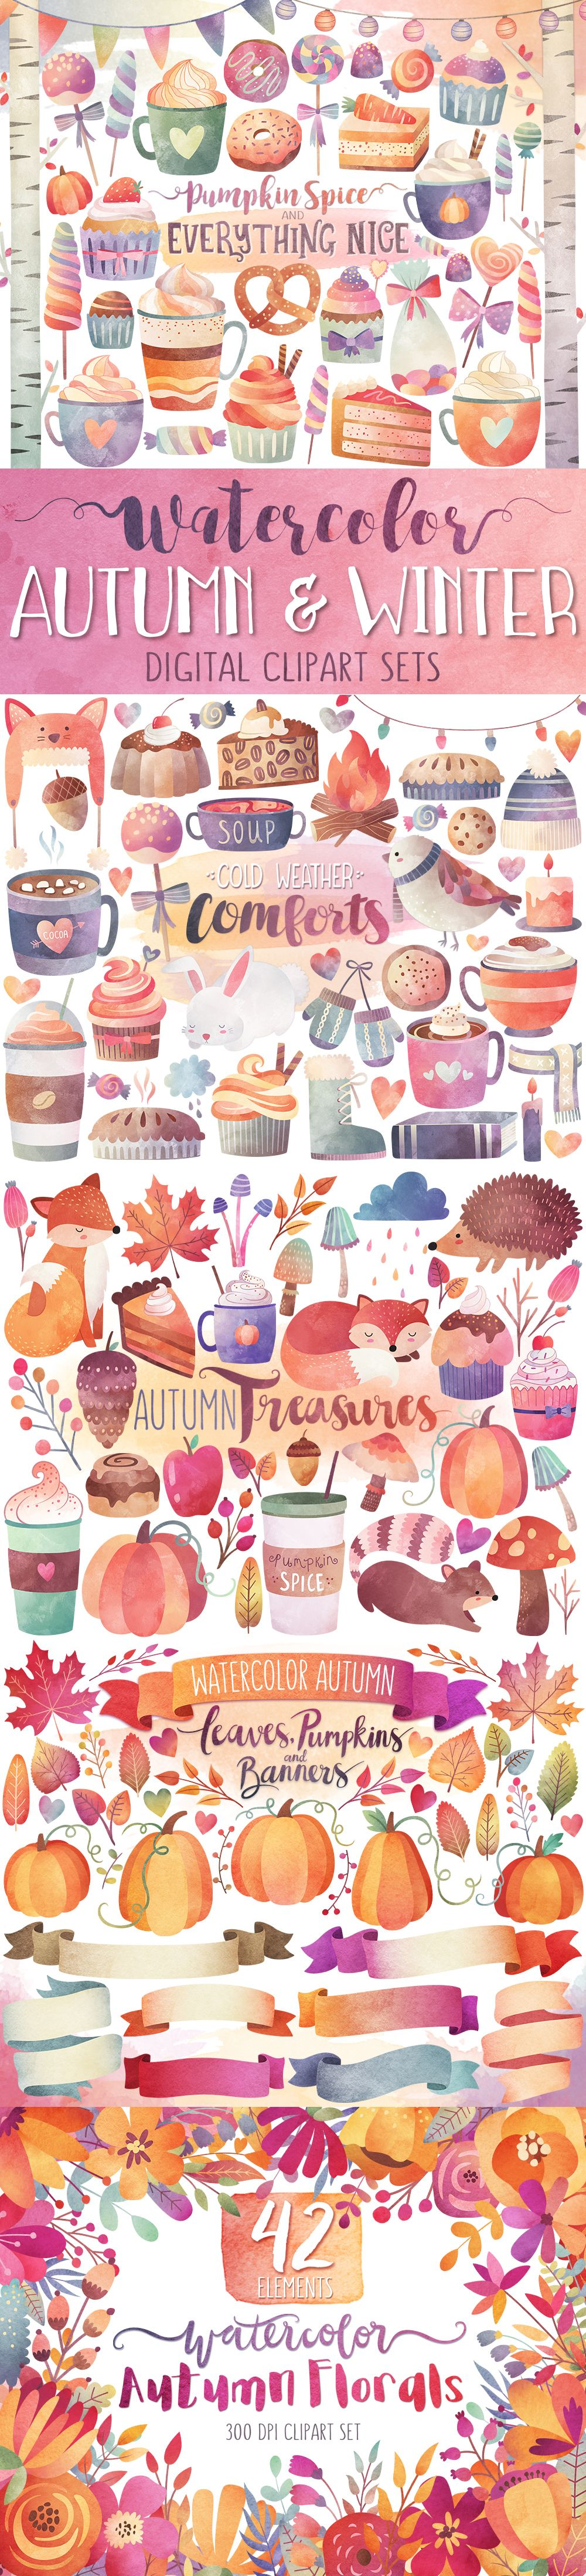 Autumn watercolor sets only. Beautiful clipart winter